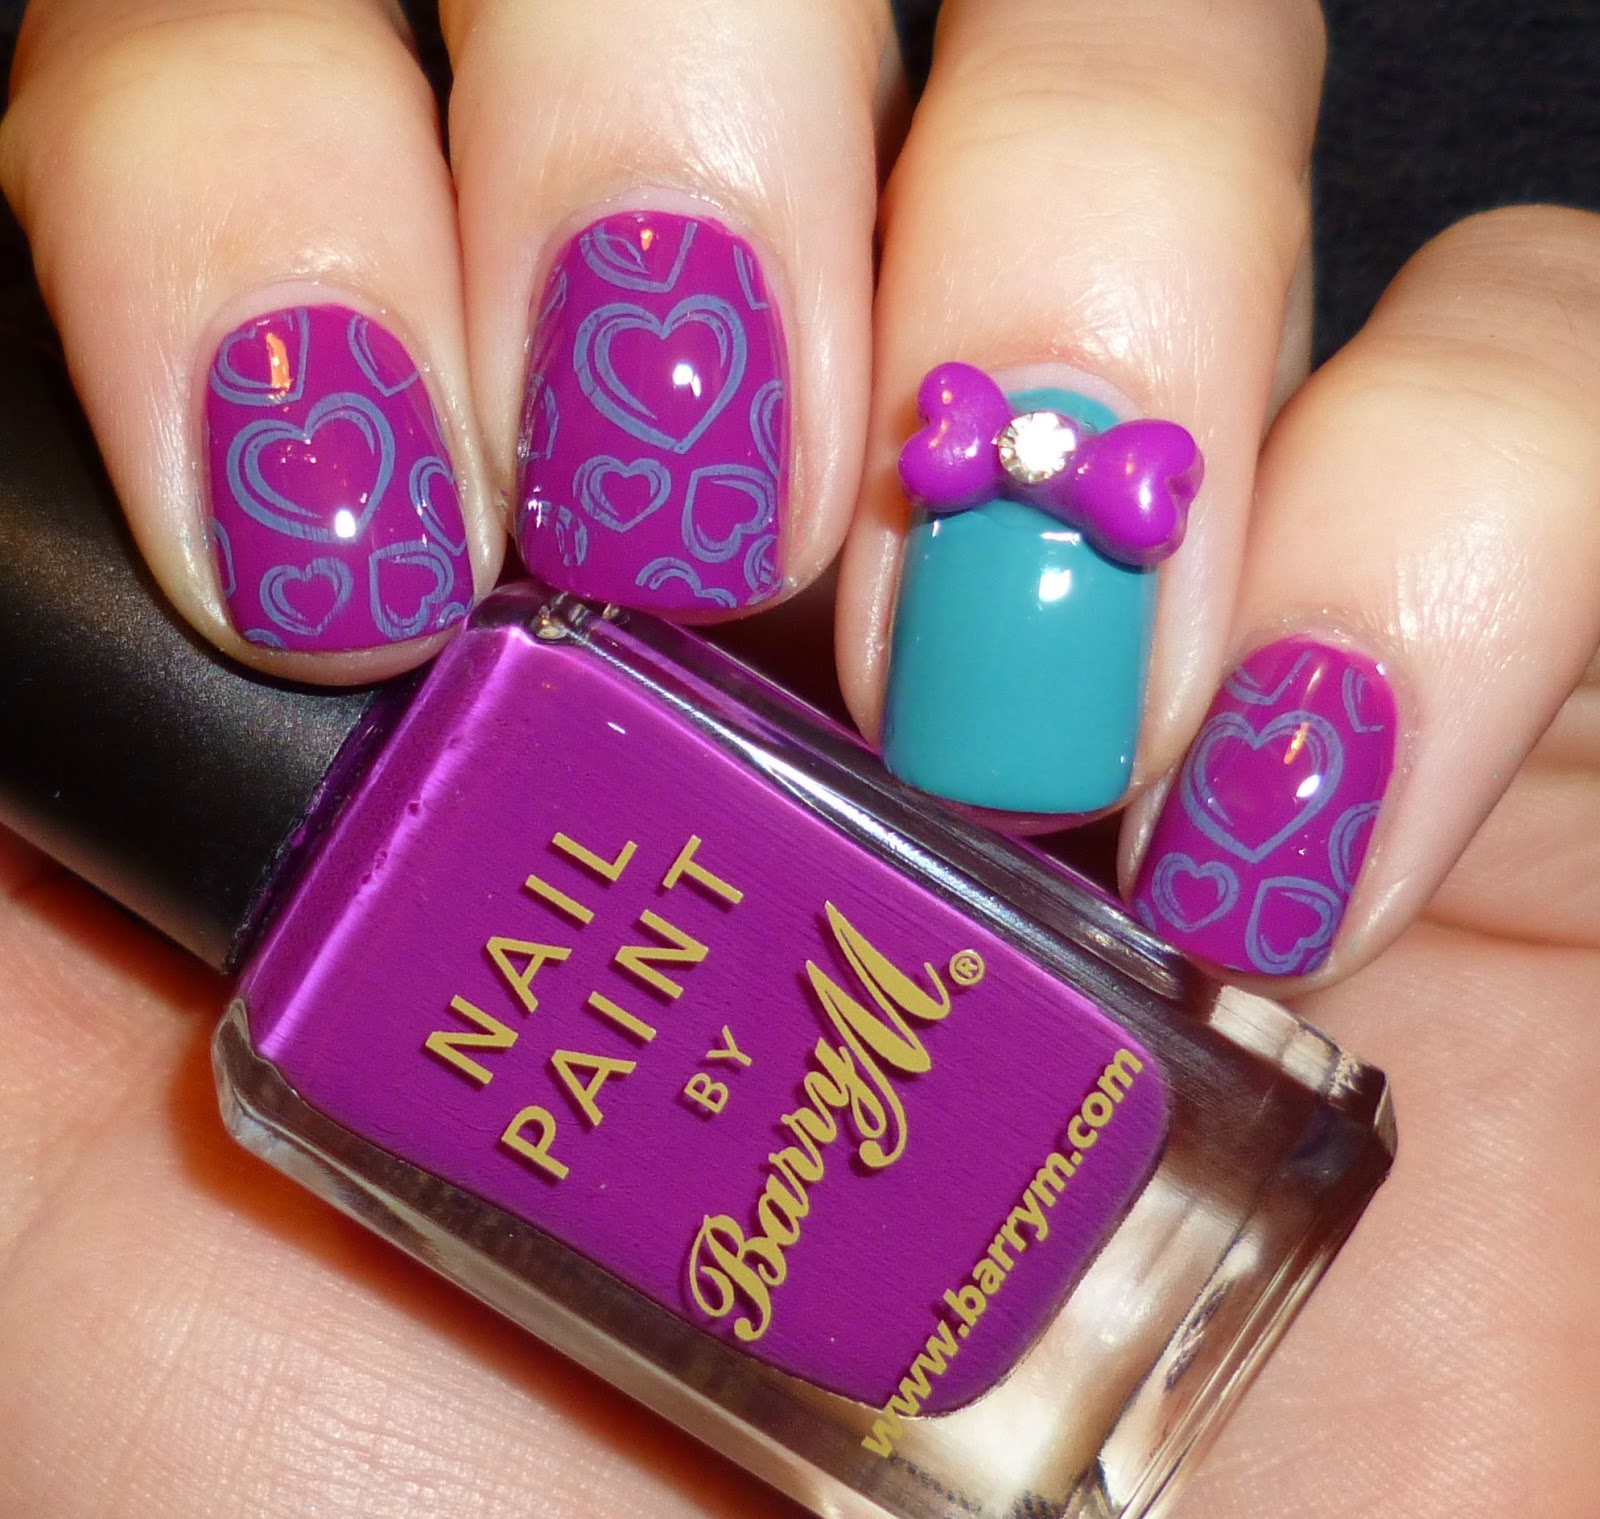 Lou is Perfectly Polished: Fun Friday Mani: Purple and Teal Hearts